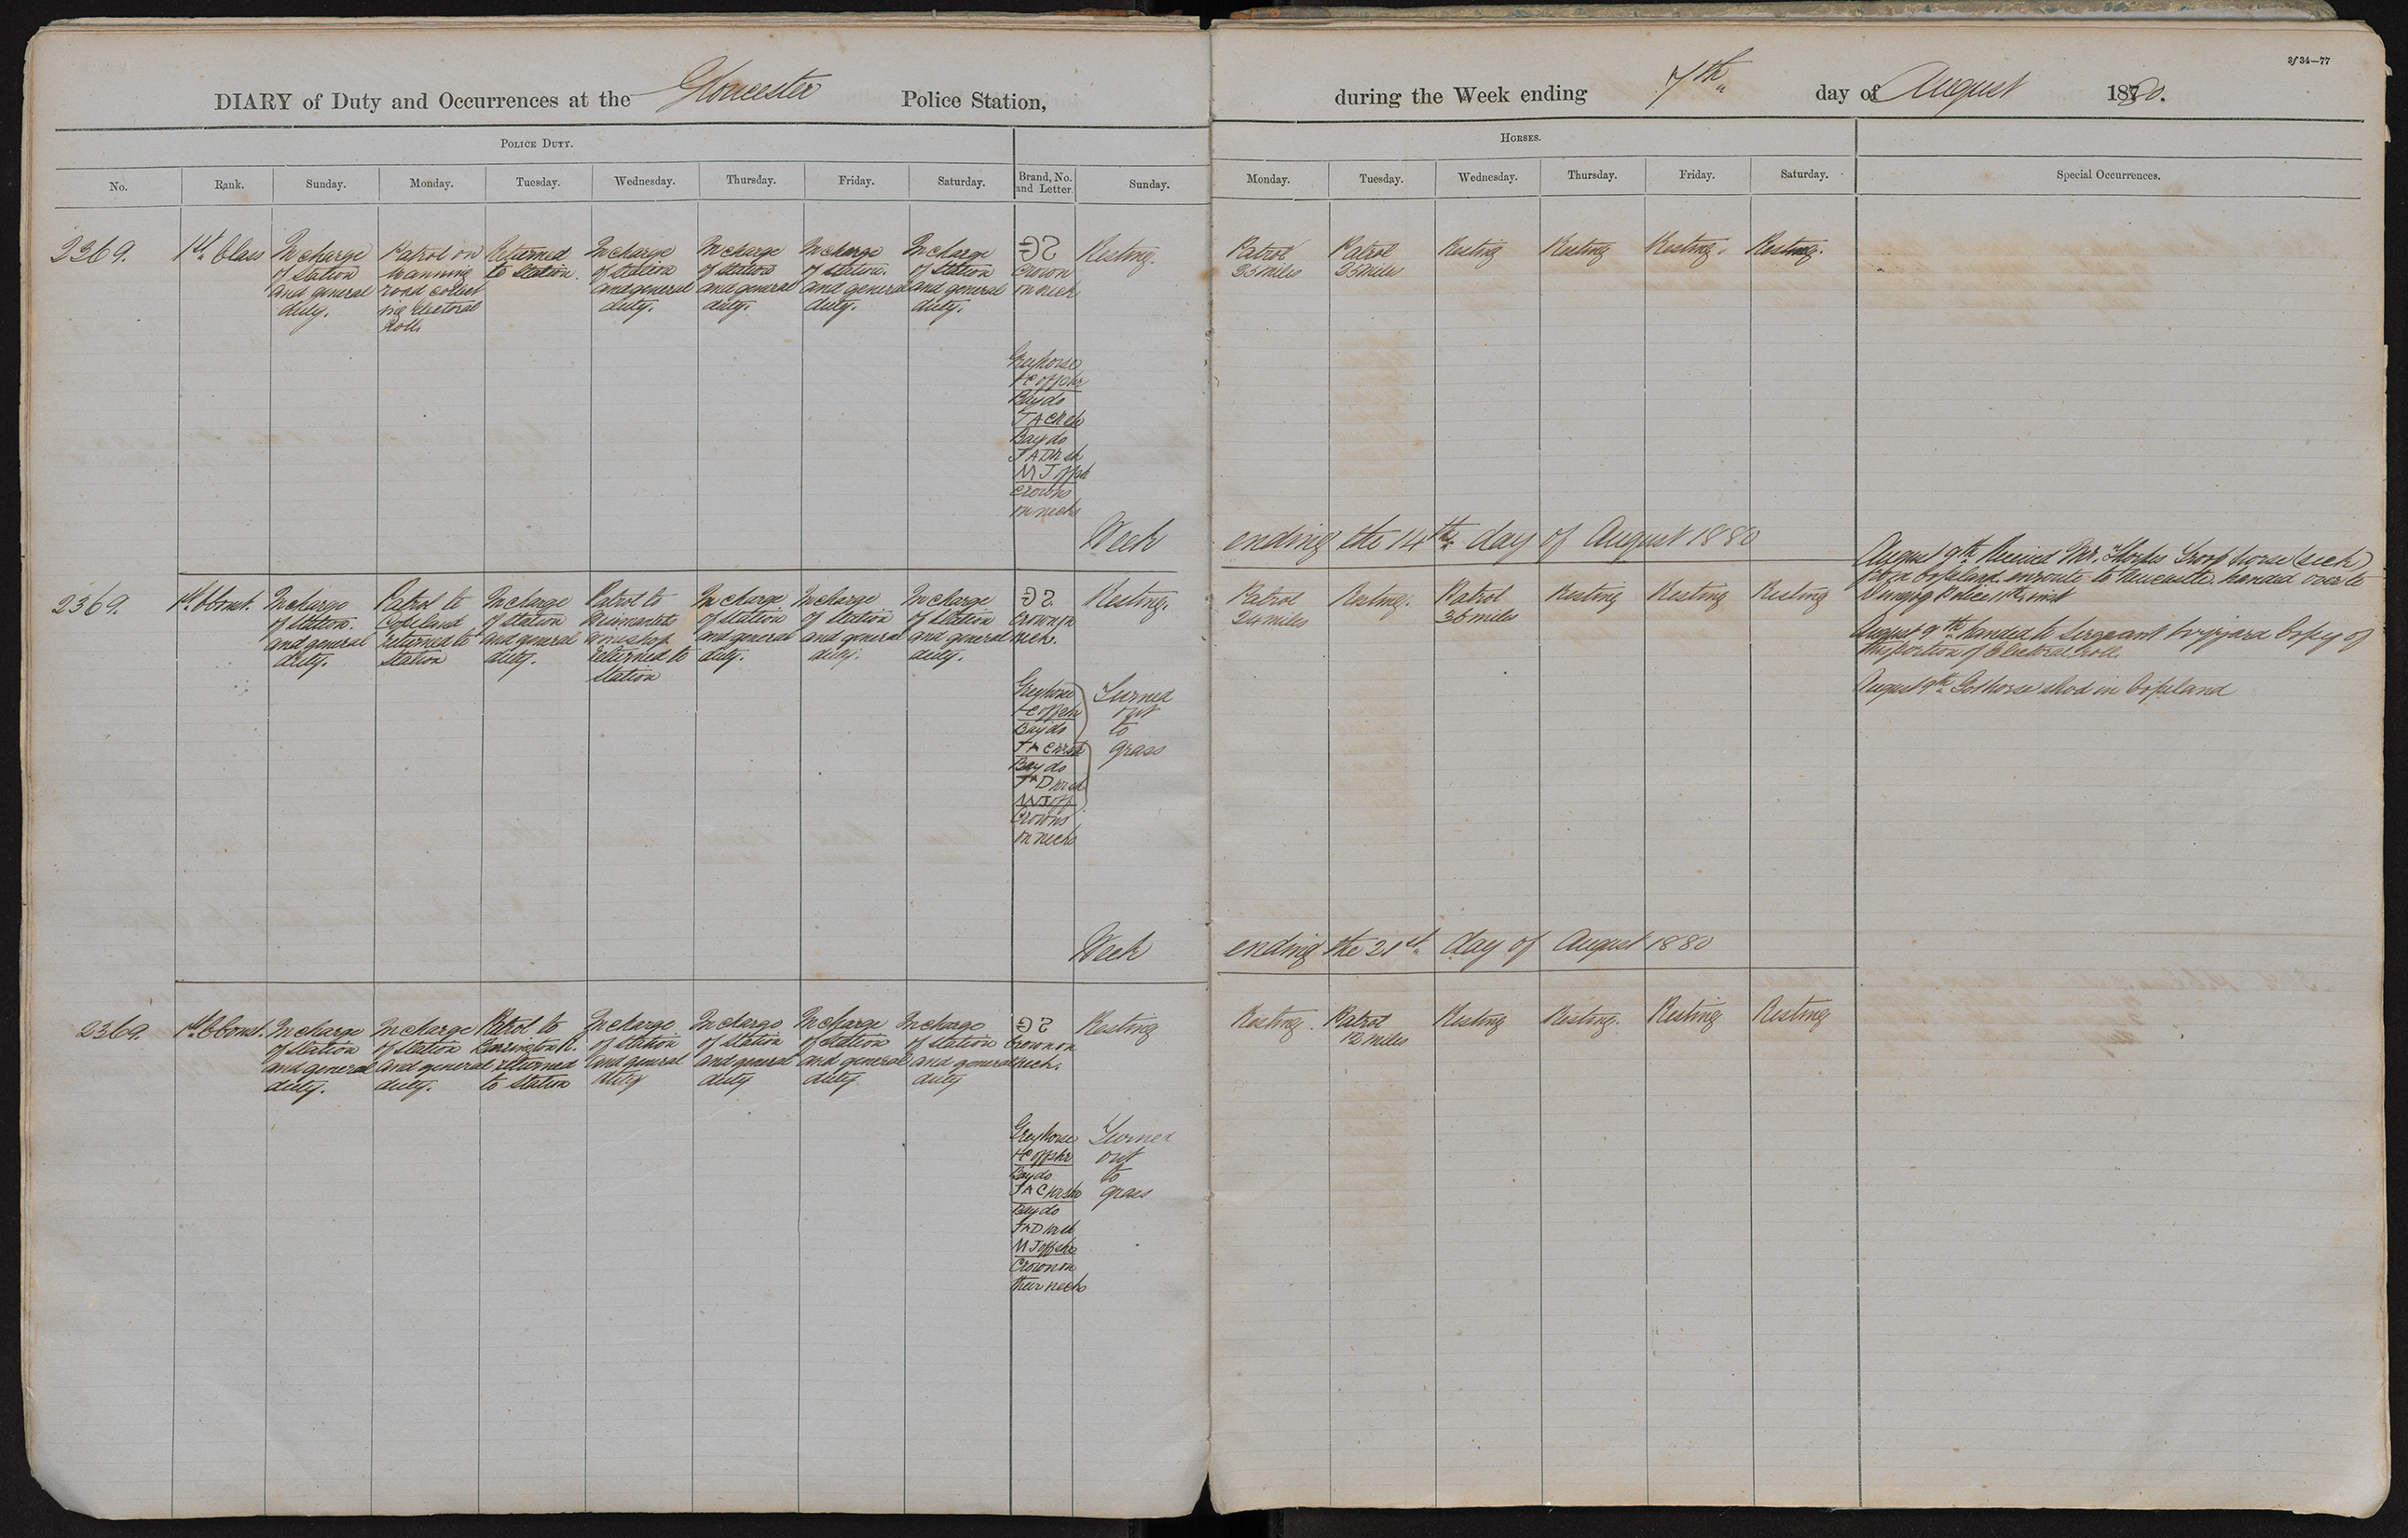 Diary of duty and occurrences at the Gloucester Police Station during the week ending the 7th day of August 1880